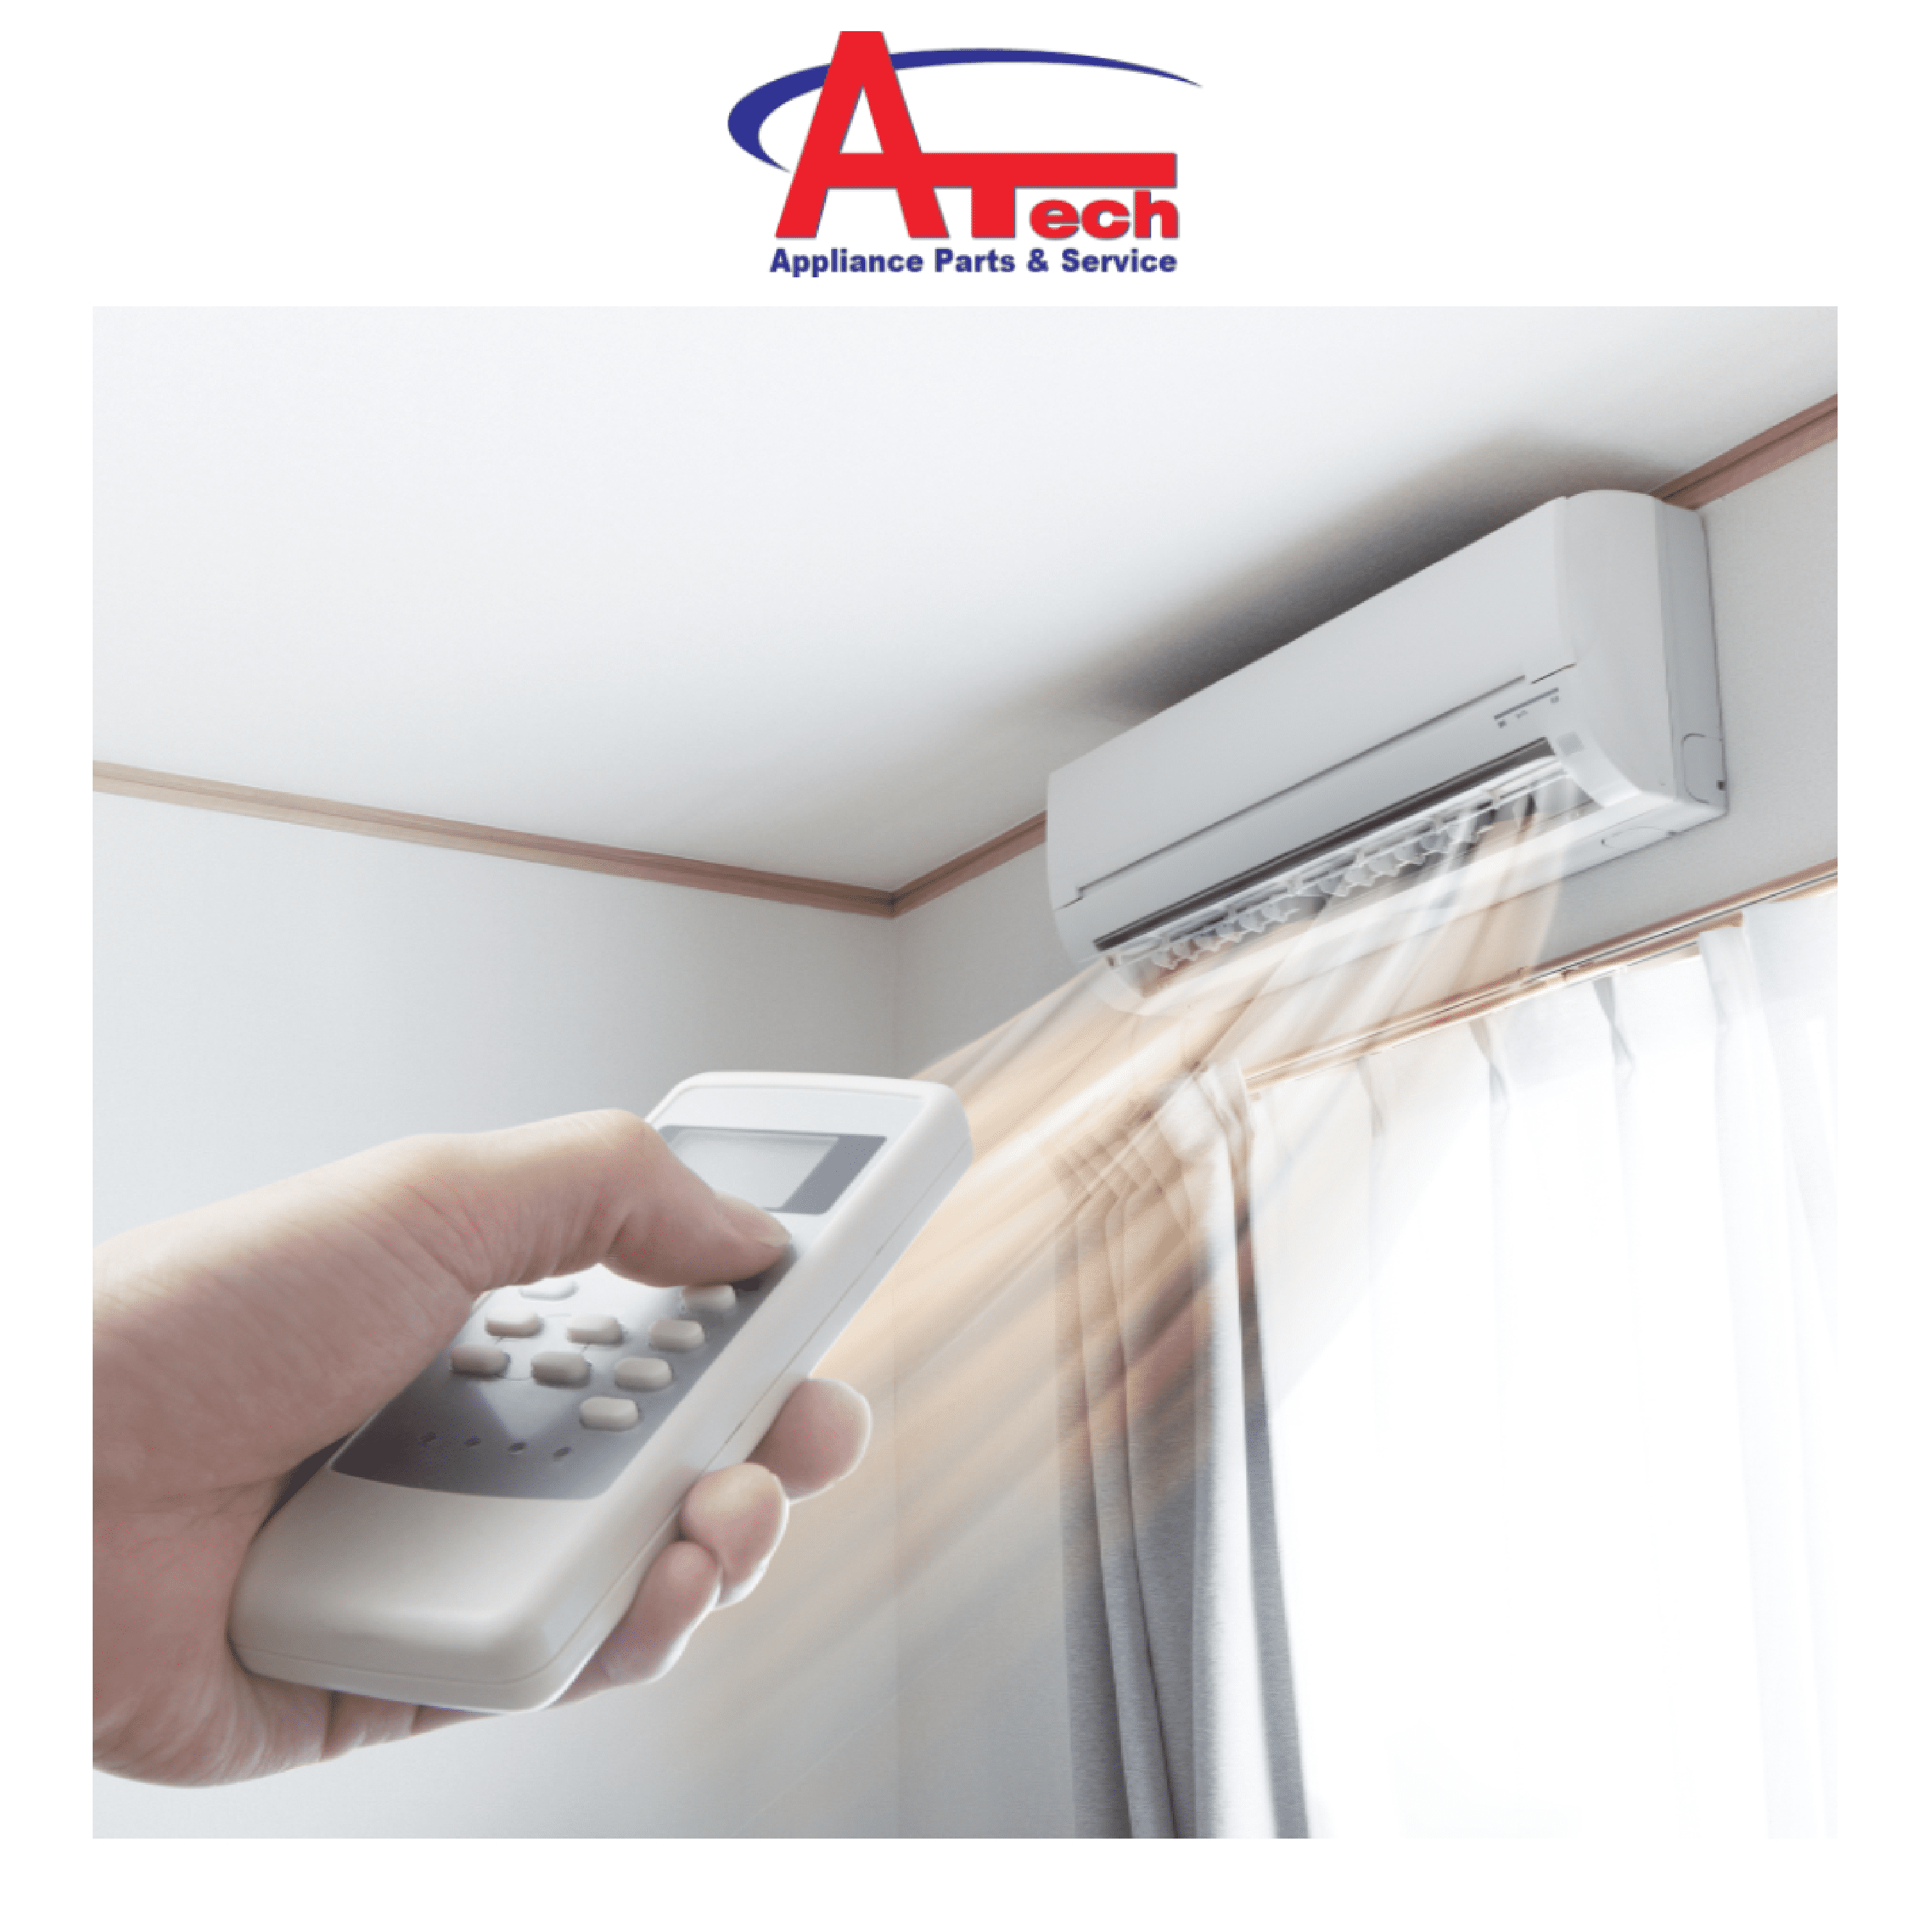 Maintenance of ceiling air conditioners 65